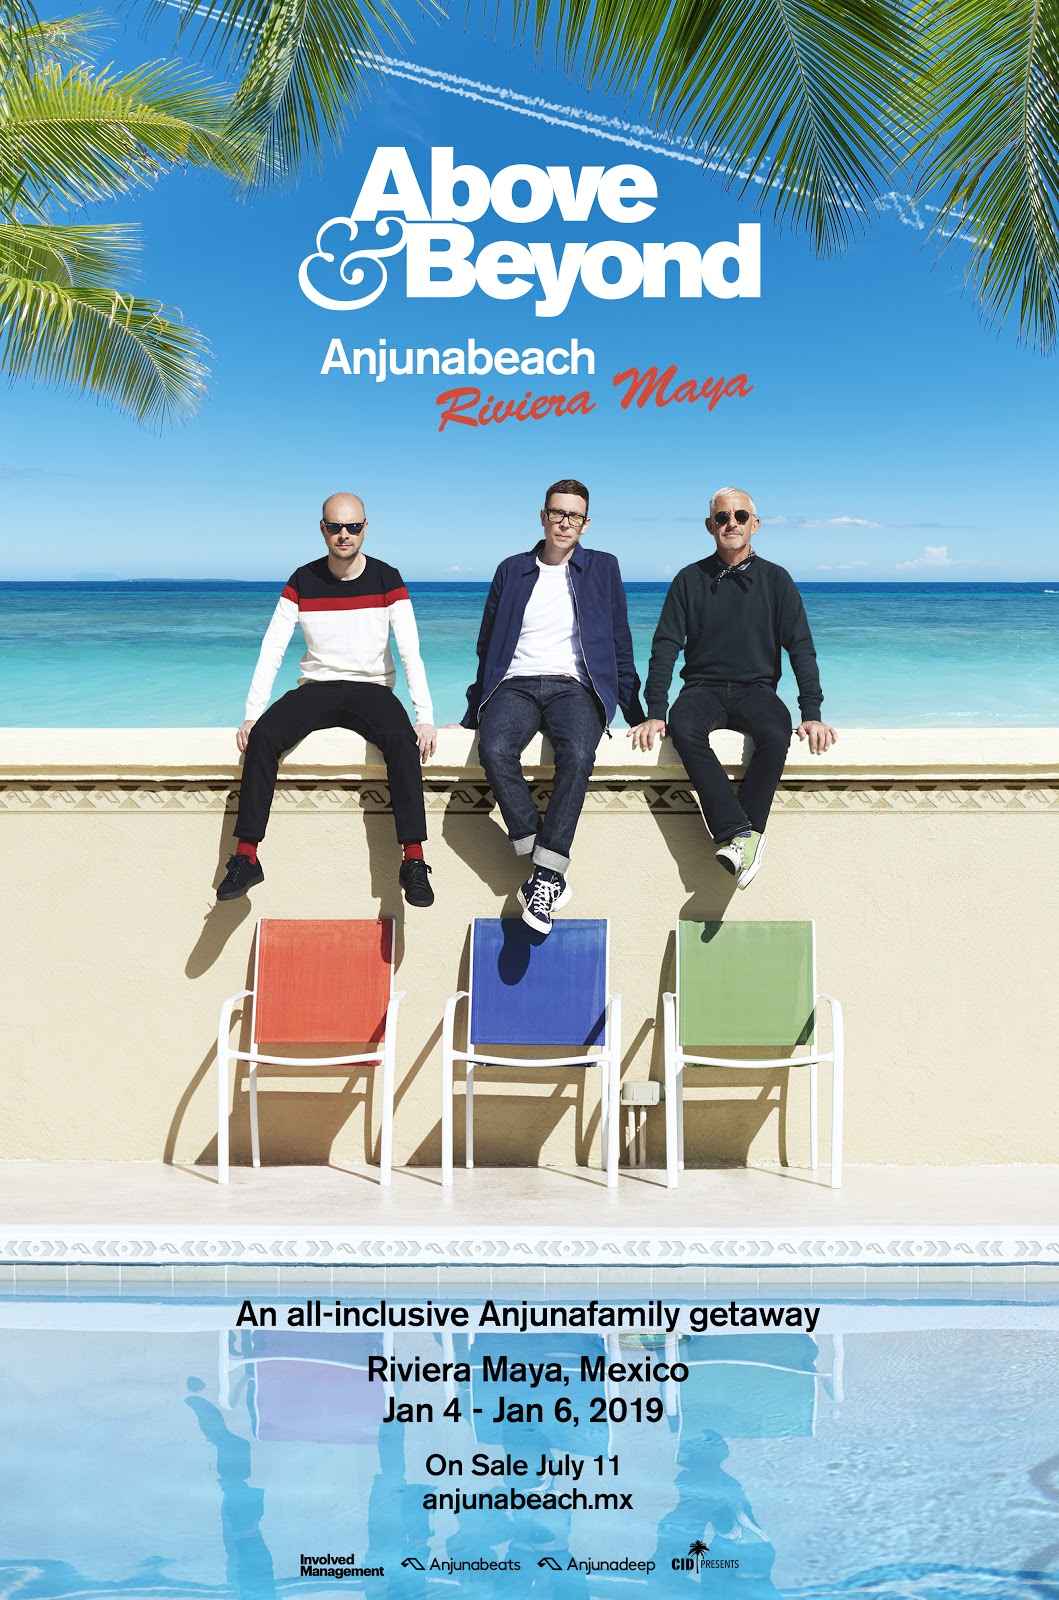 Above & Beyond presents Anjunabeach Mexico @ Riviera Maya on 4th-6th of January 2019